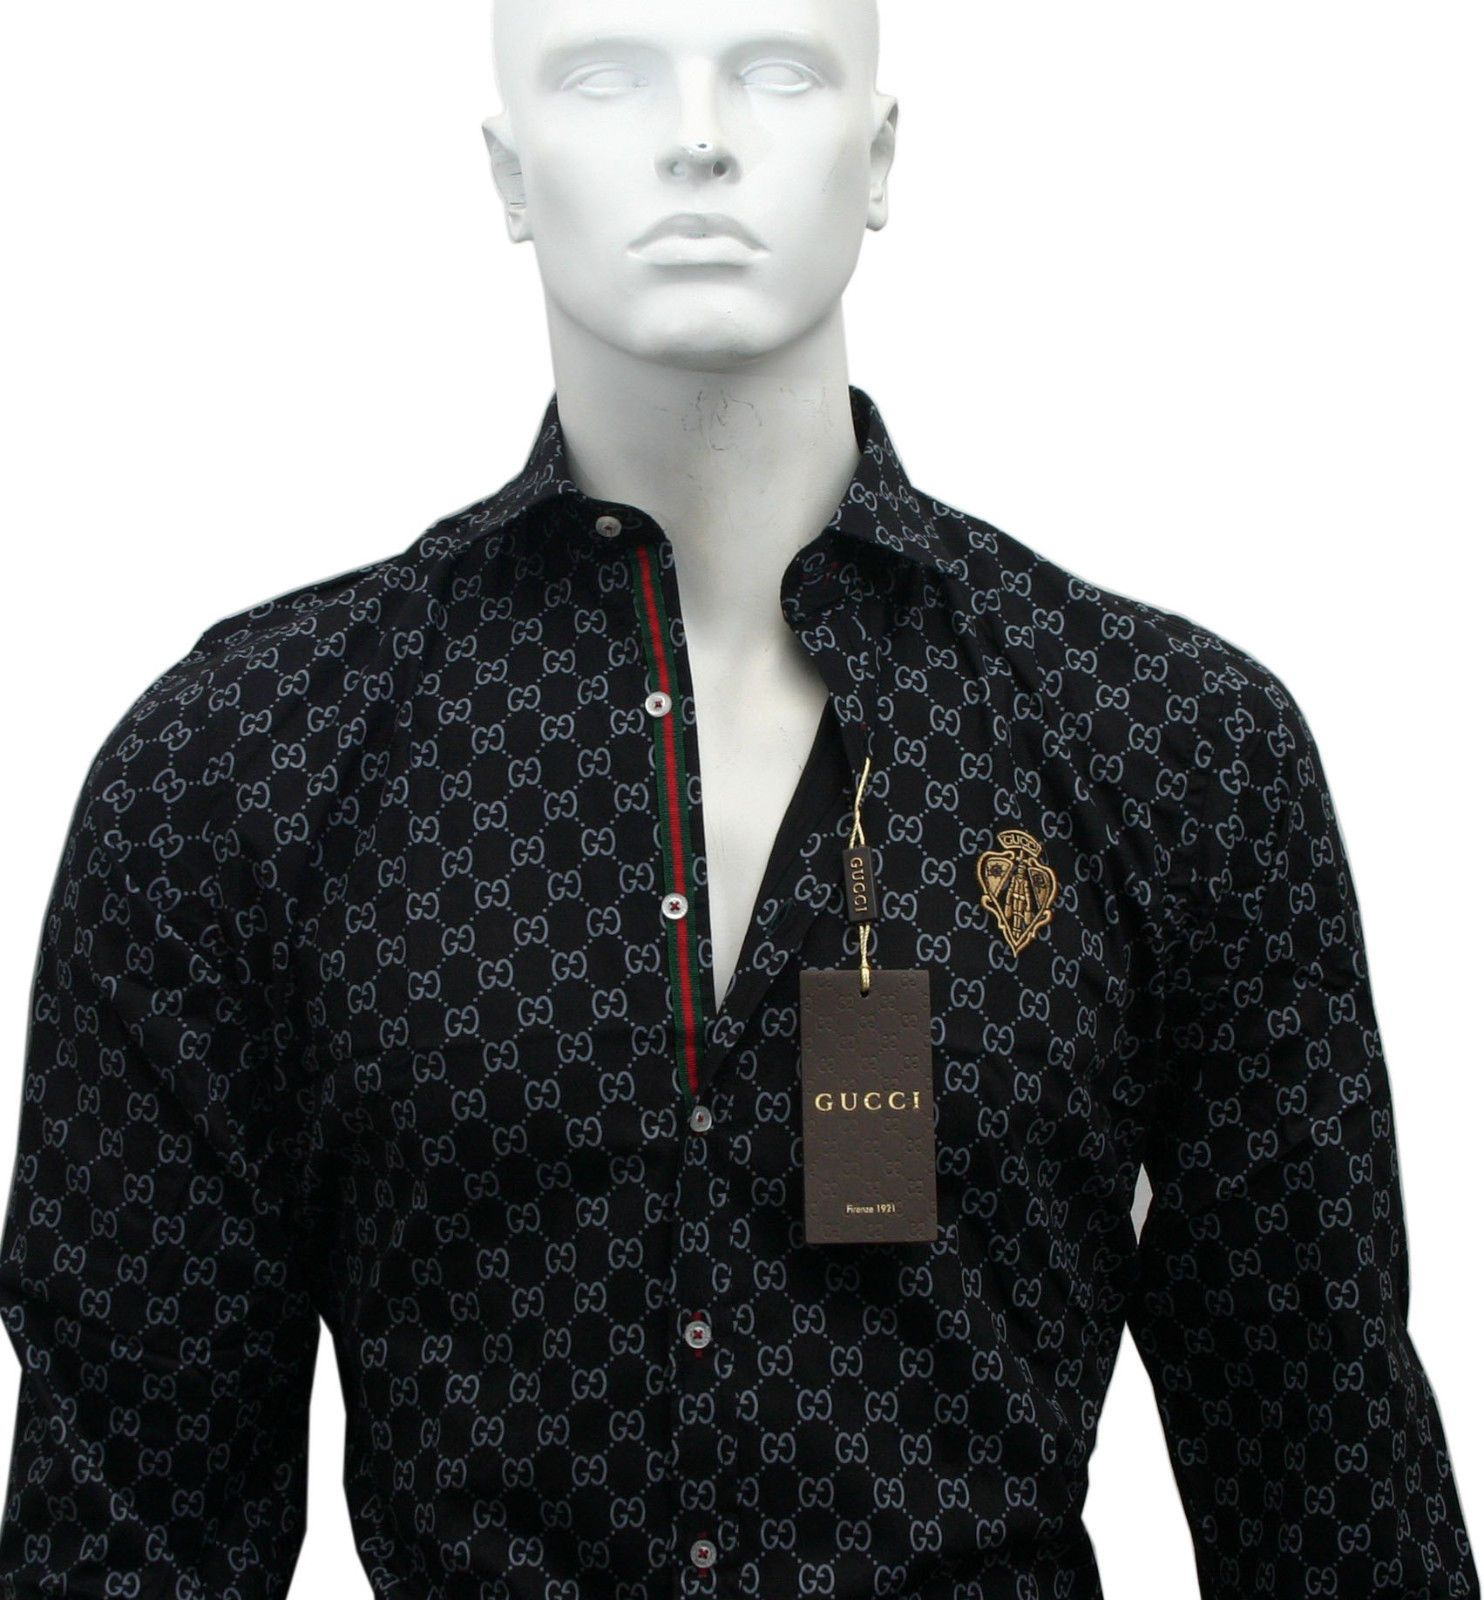 569397e7c38 Black Color New GUCCI Long Sleeve Cotton Dress Shirt For Men's Size M.L.XL